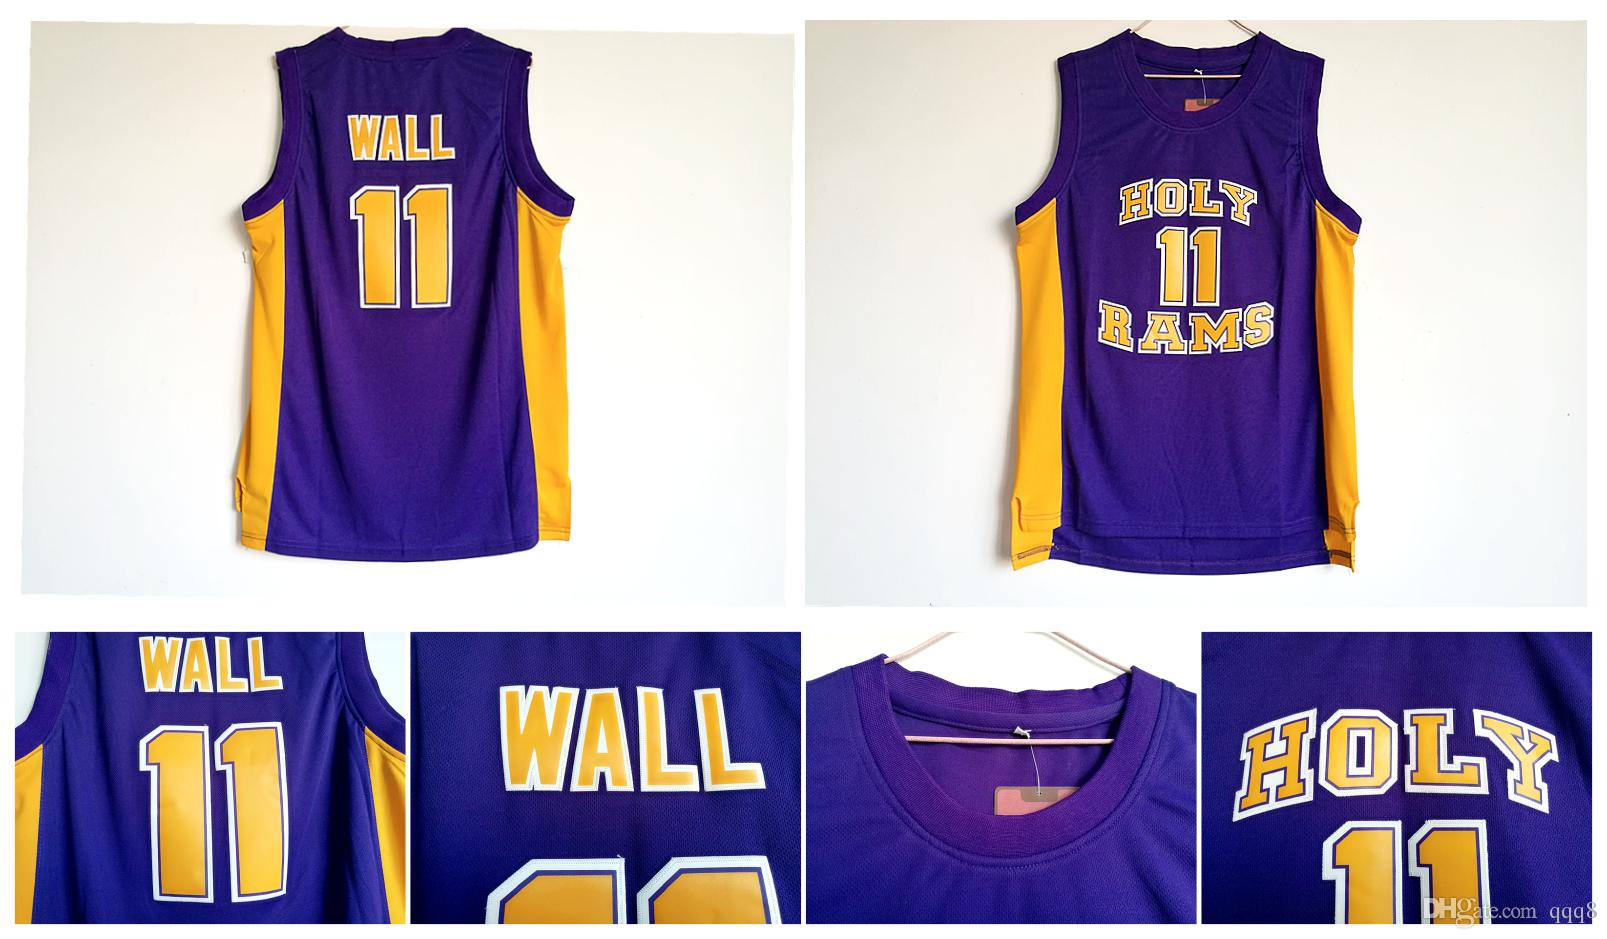 93df6fca8 11 John Wall Jersey Holy Rams High School Jersey College Basketball Jerseys  Purple Stitched Sports Shirt Top Quality